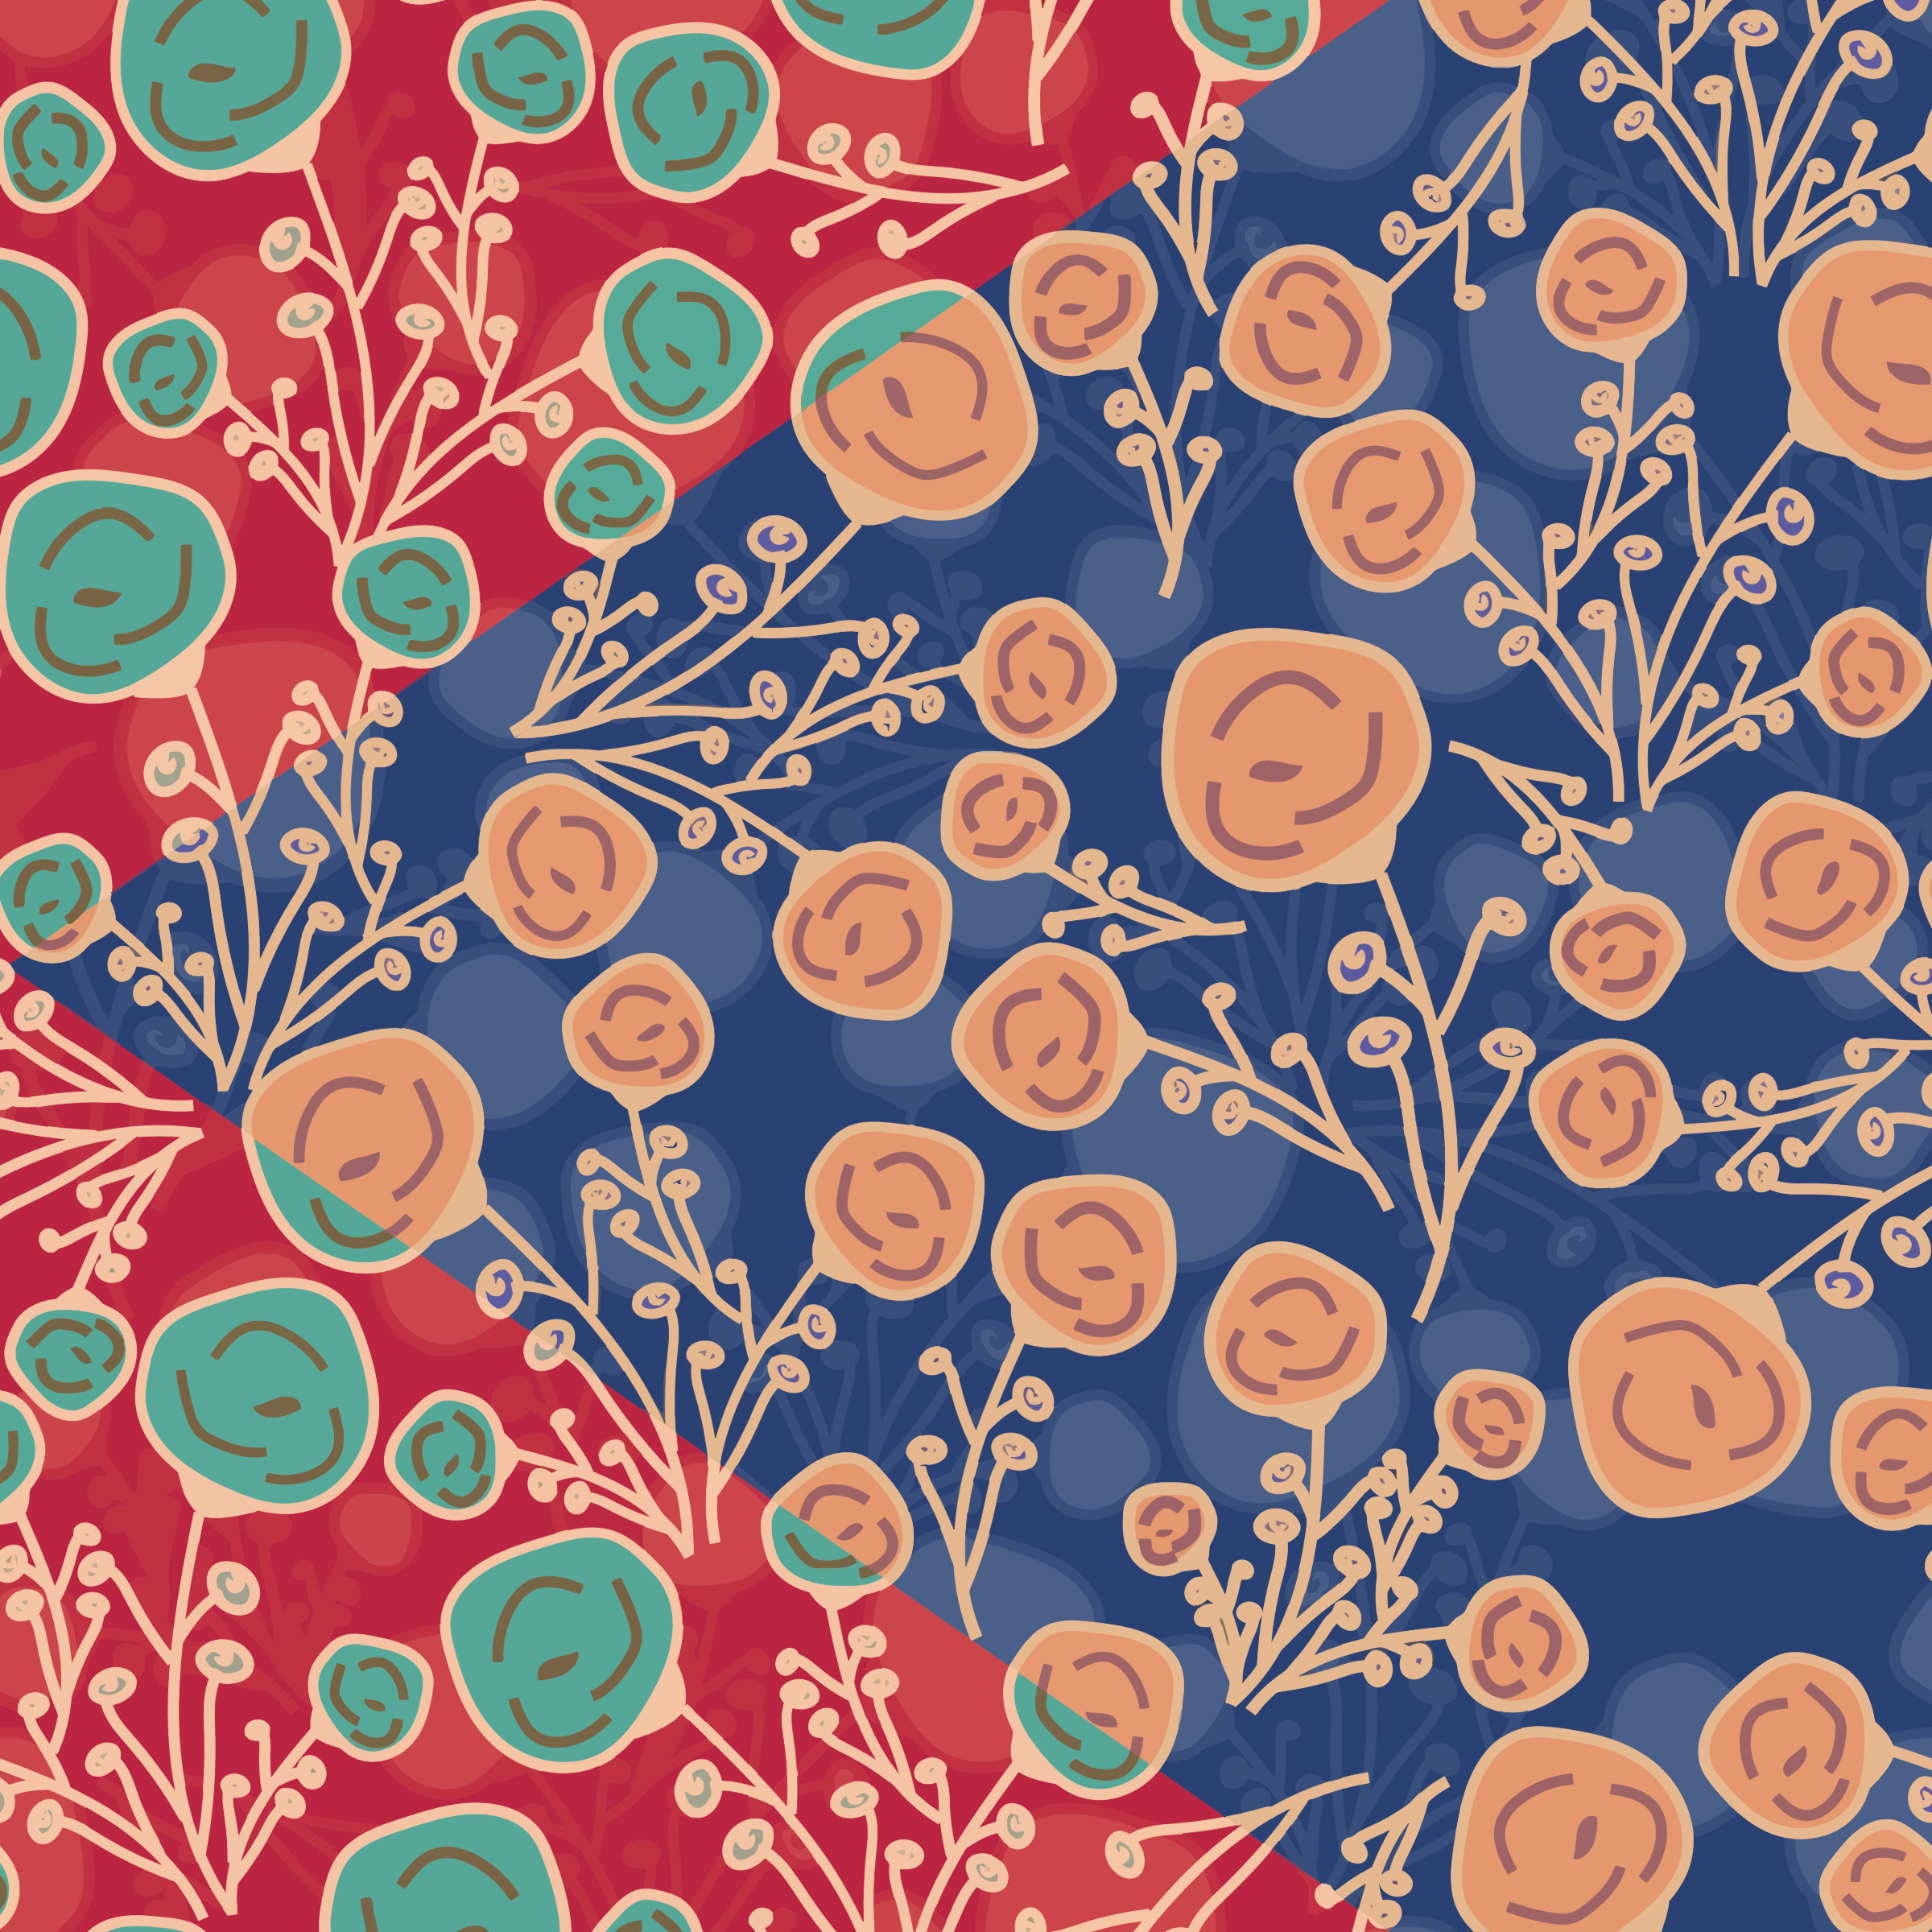 Floral Pattern Background Design by GDJ